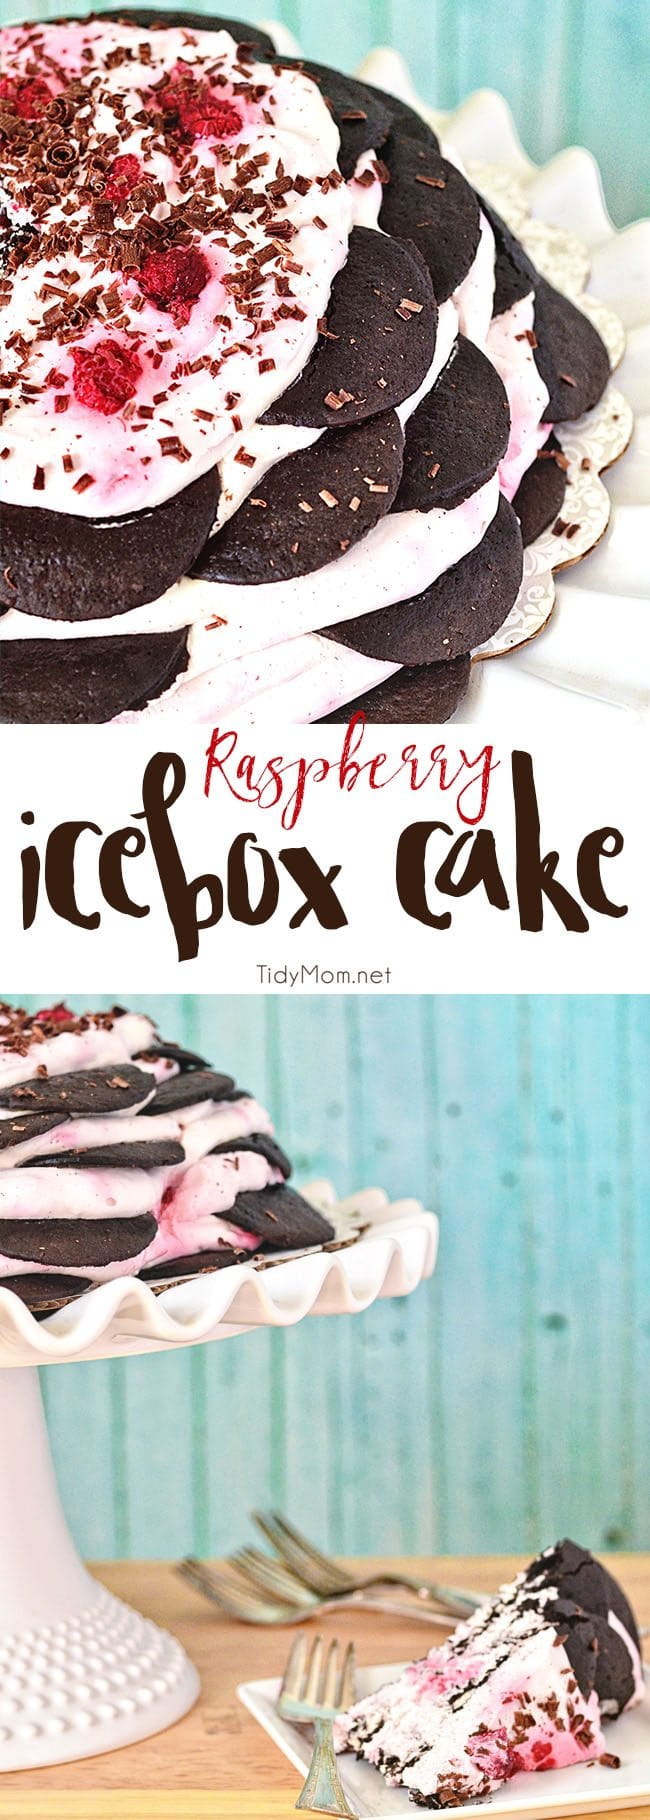 Raspberry Icebox cake is an easy, no-bake dessert with layer after layer of chocolate wafers and raspberry whipped cream.Get the full printable recipe at TidyMom.net